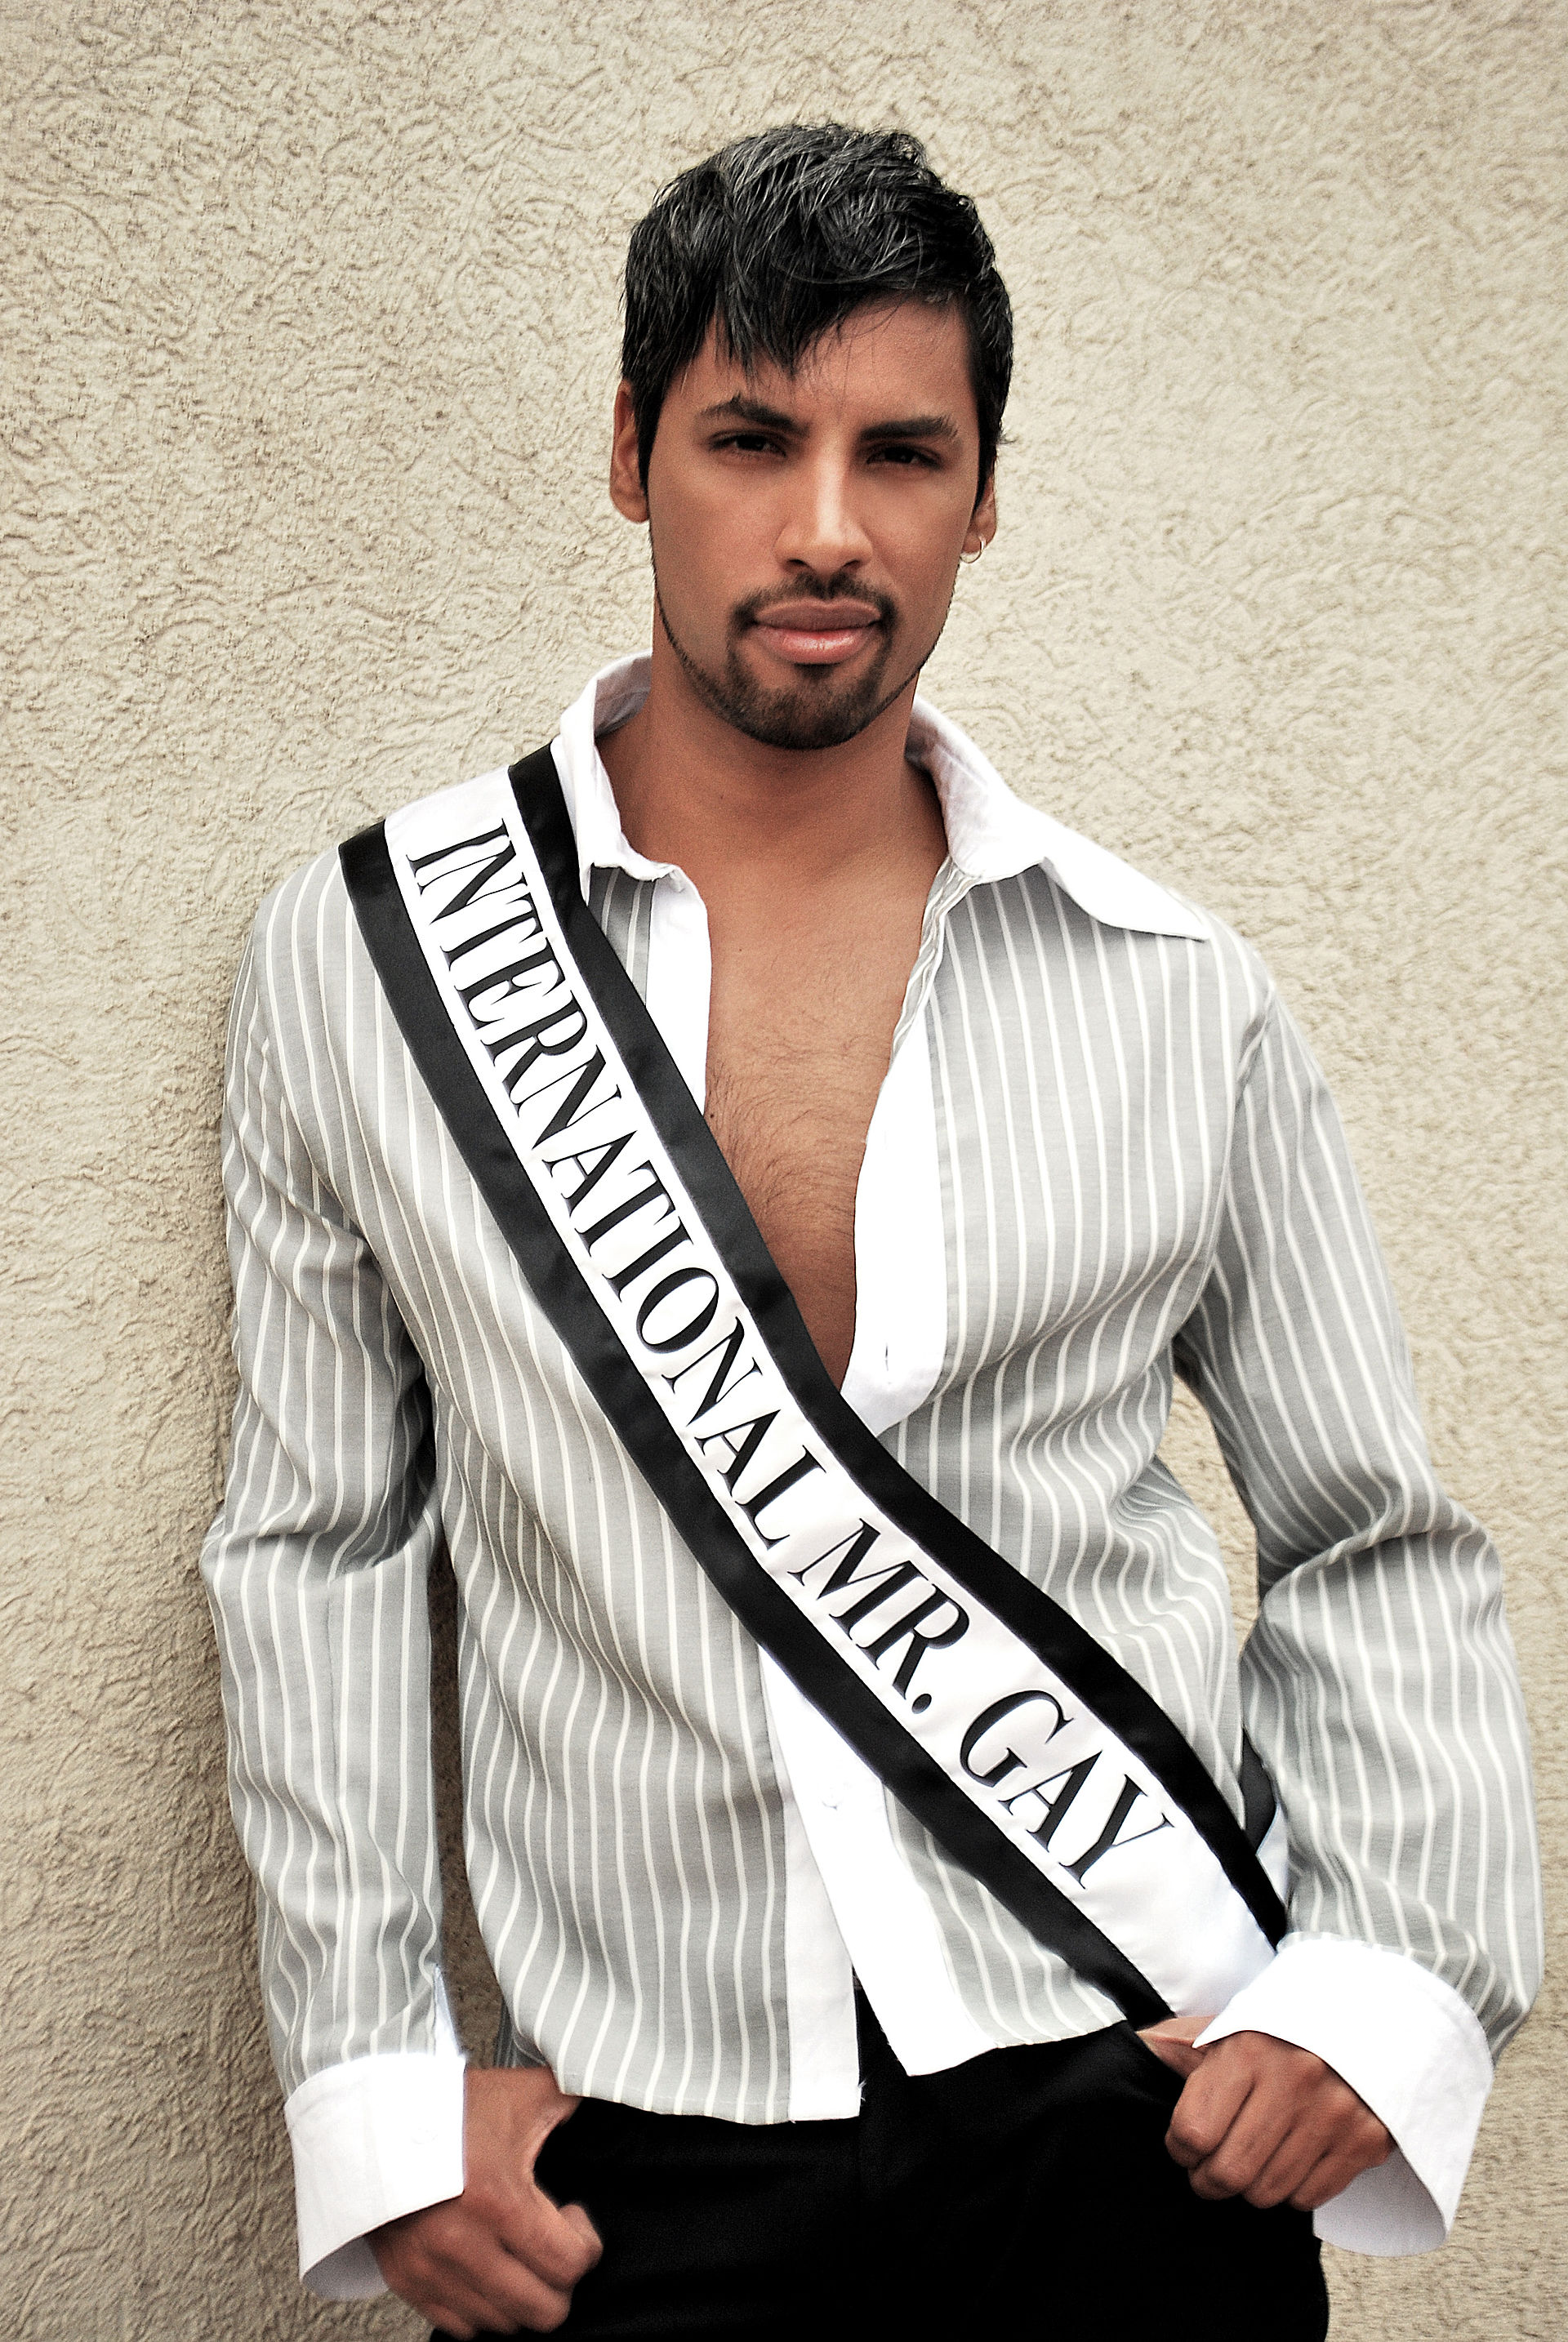 The purpose of Mister Gay Chile titleholders is to project